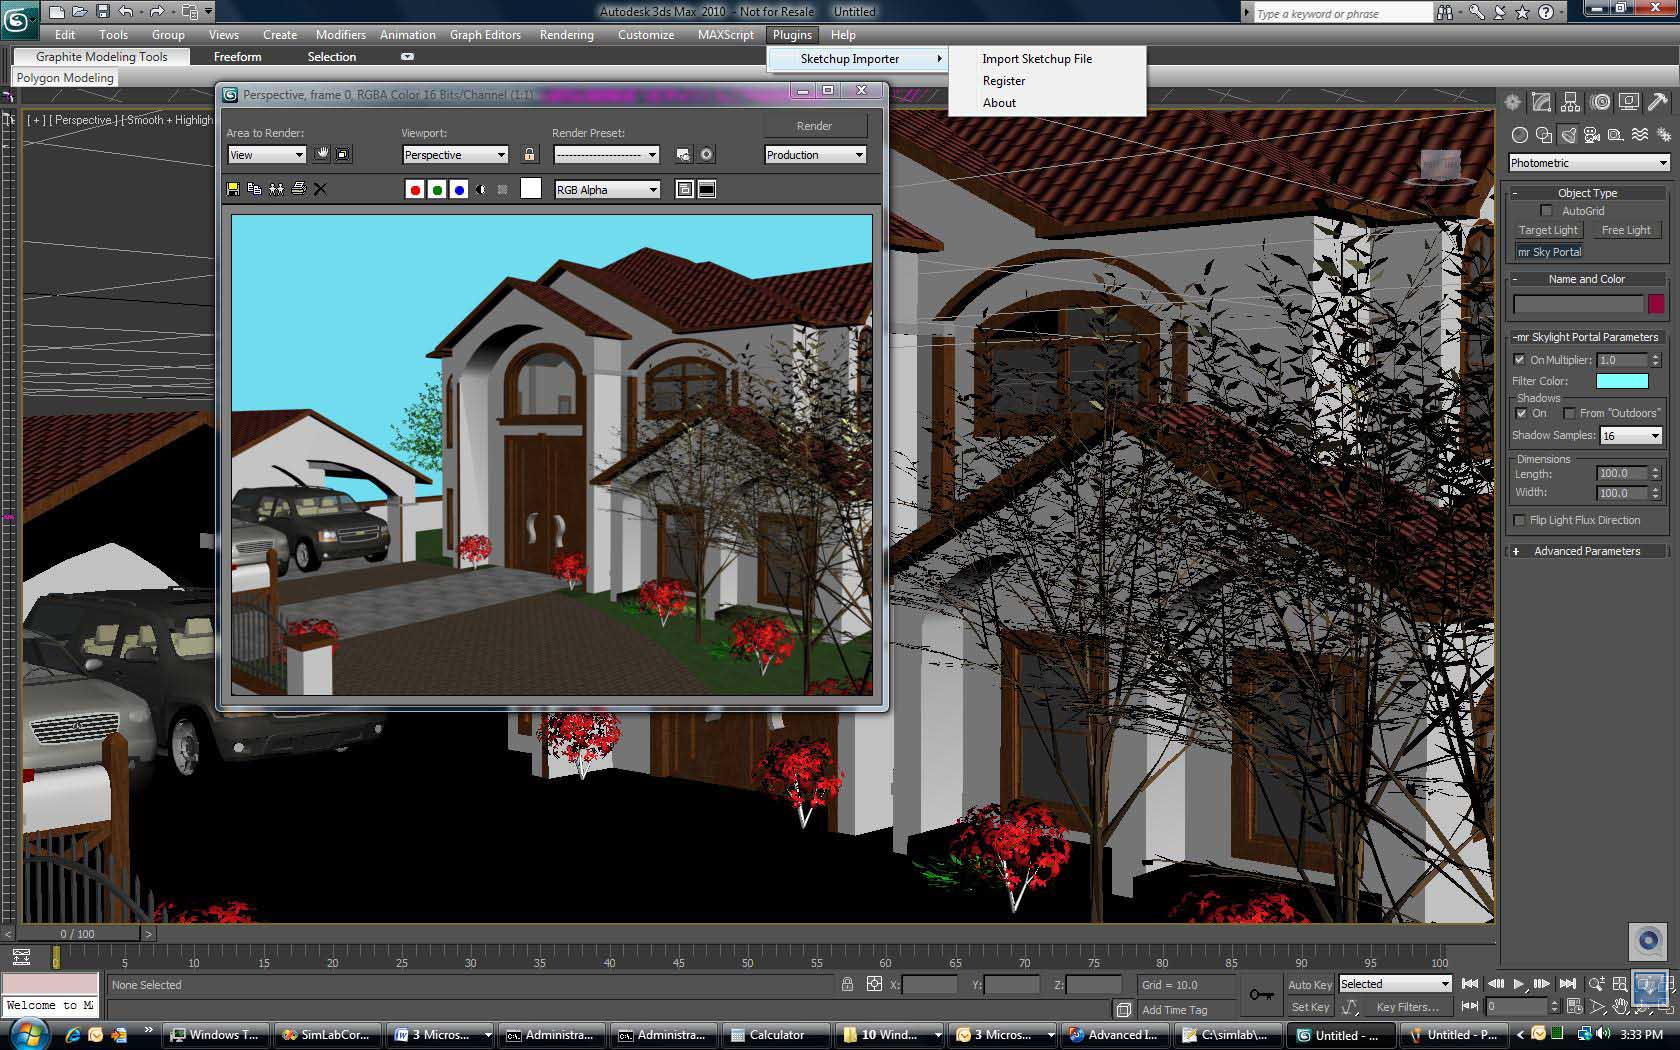 Simlab 3d Plugins Sketchup Importer For 3ds Max